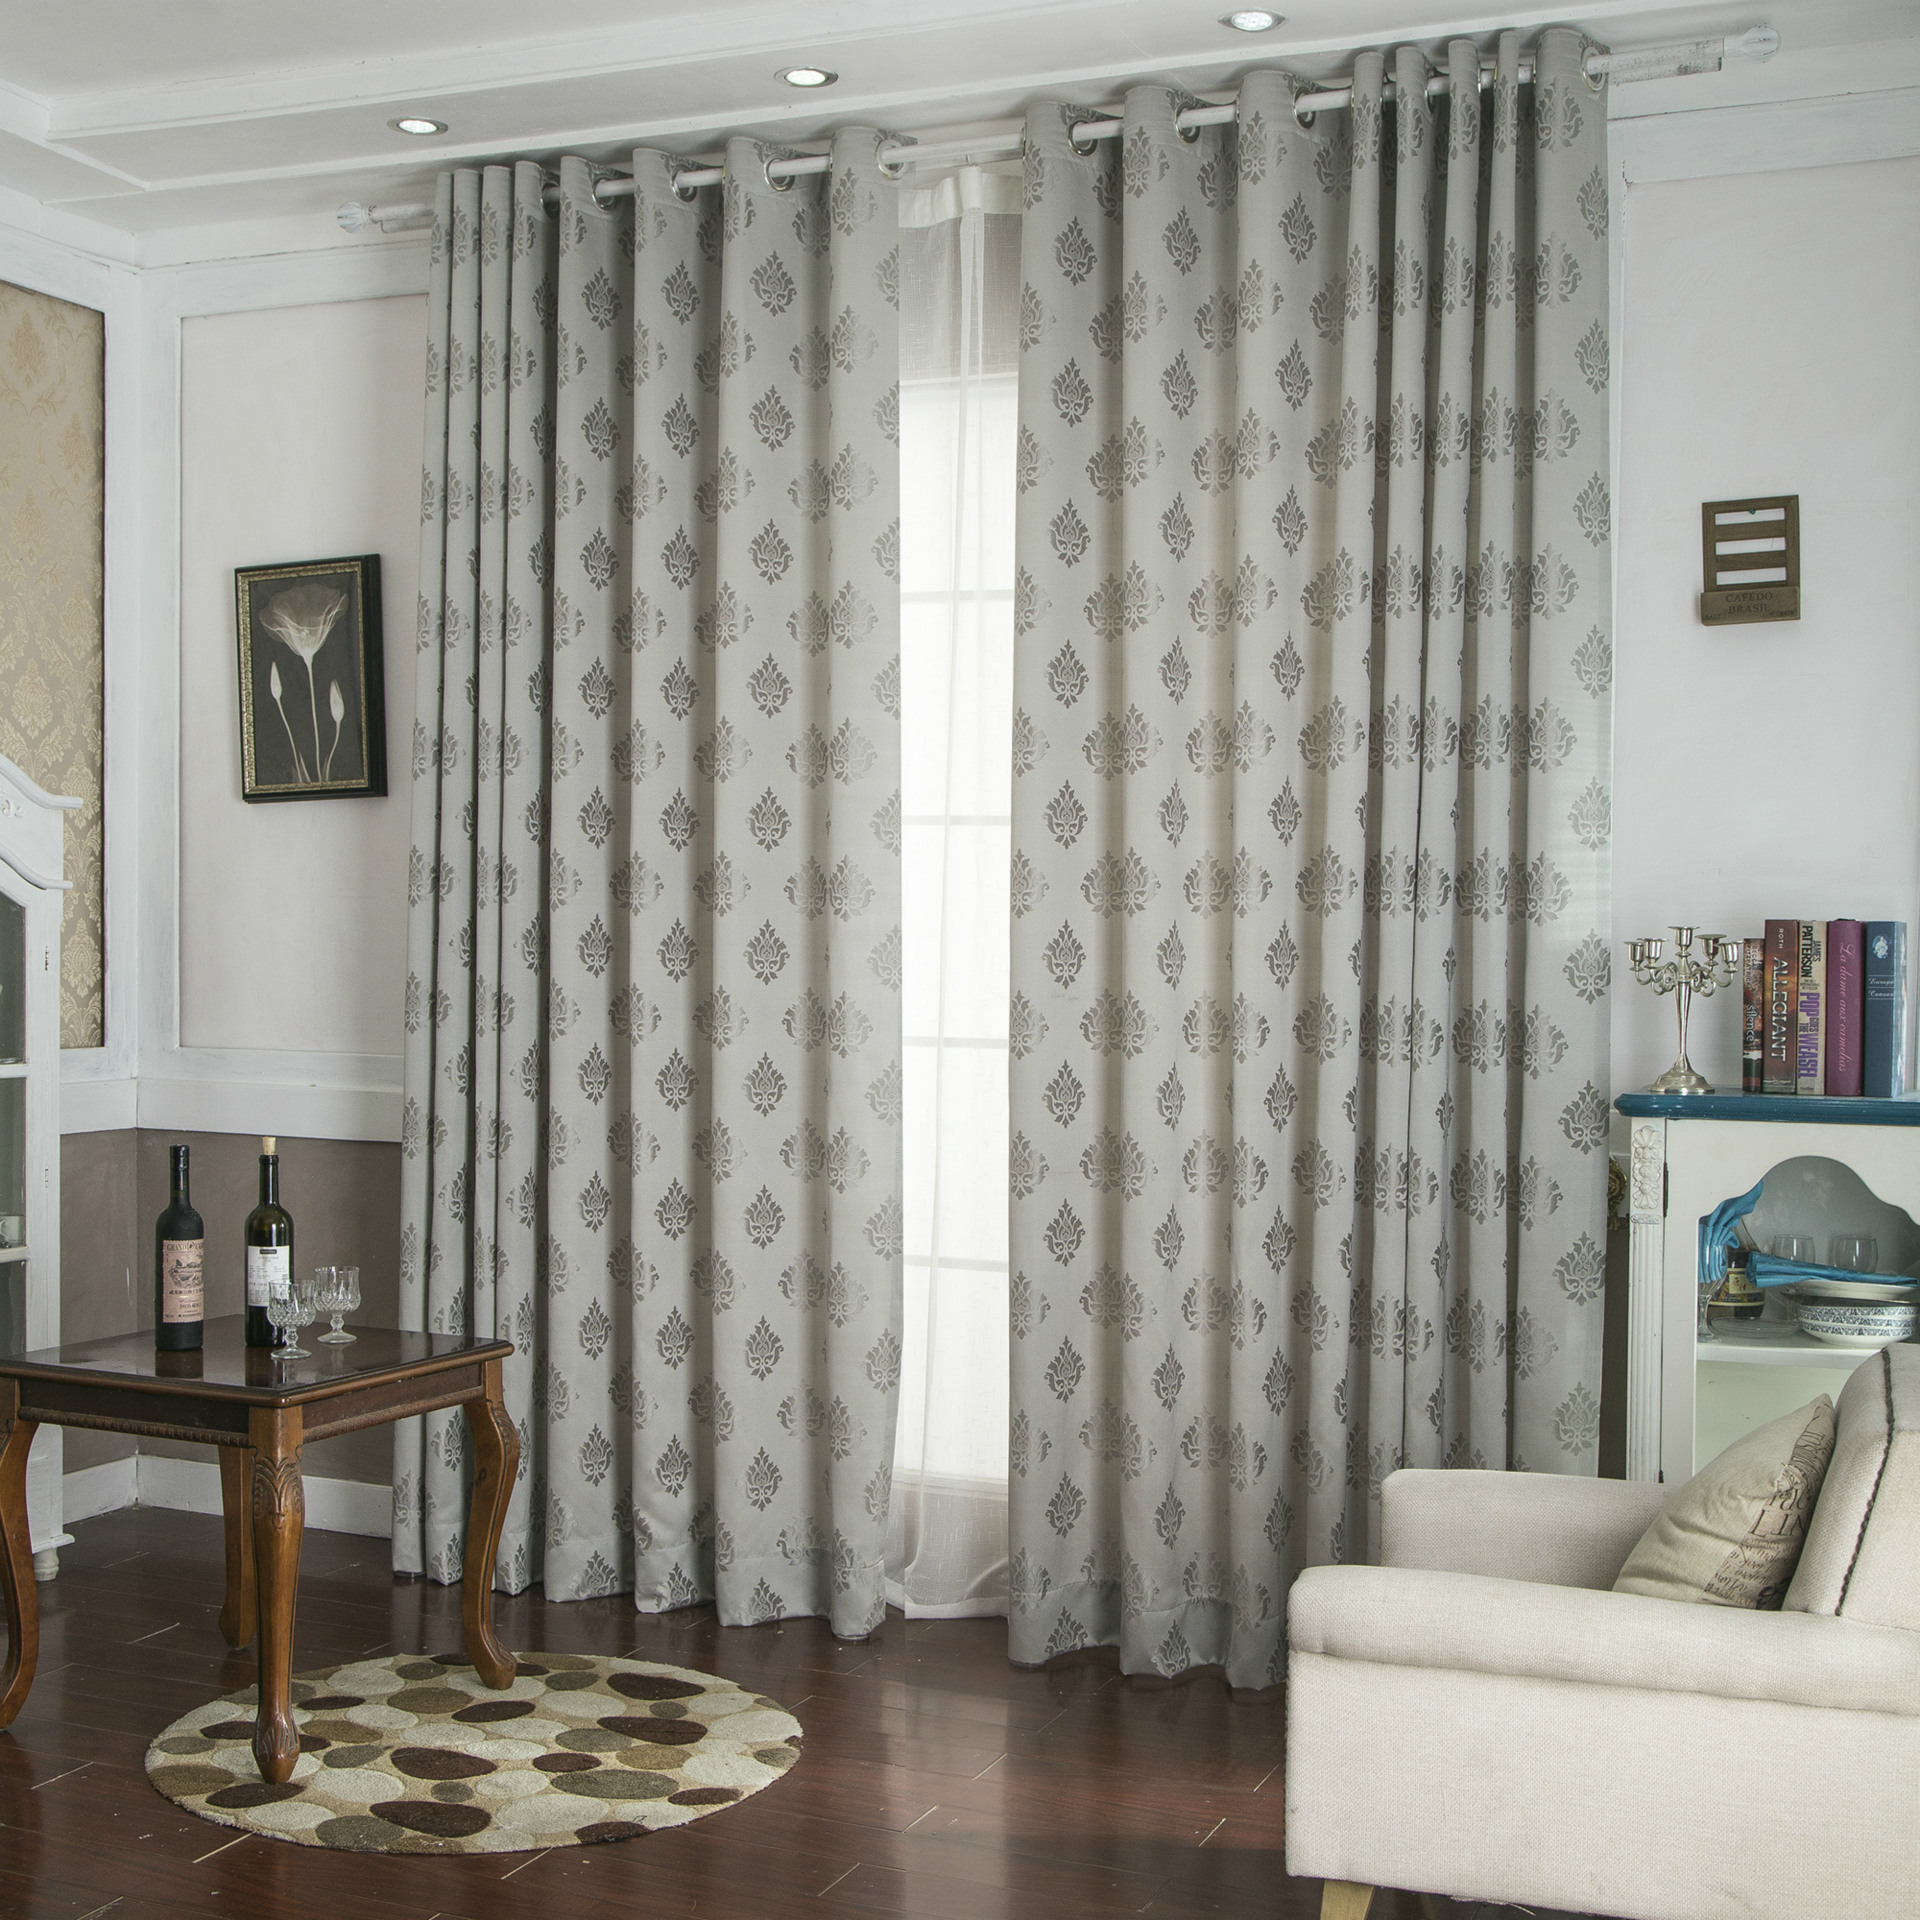 Patterned Curtains For Living Room Compare Prices On Elegant Living Room Curtains Online Shopping